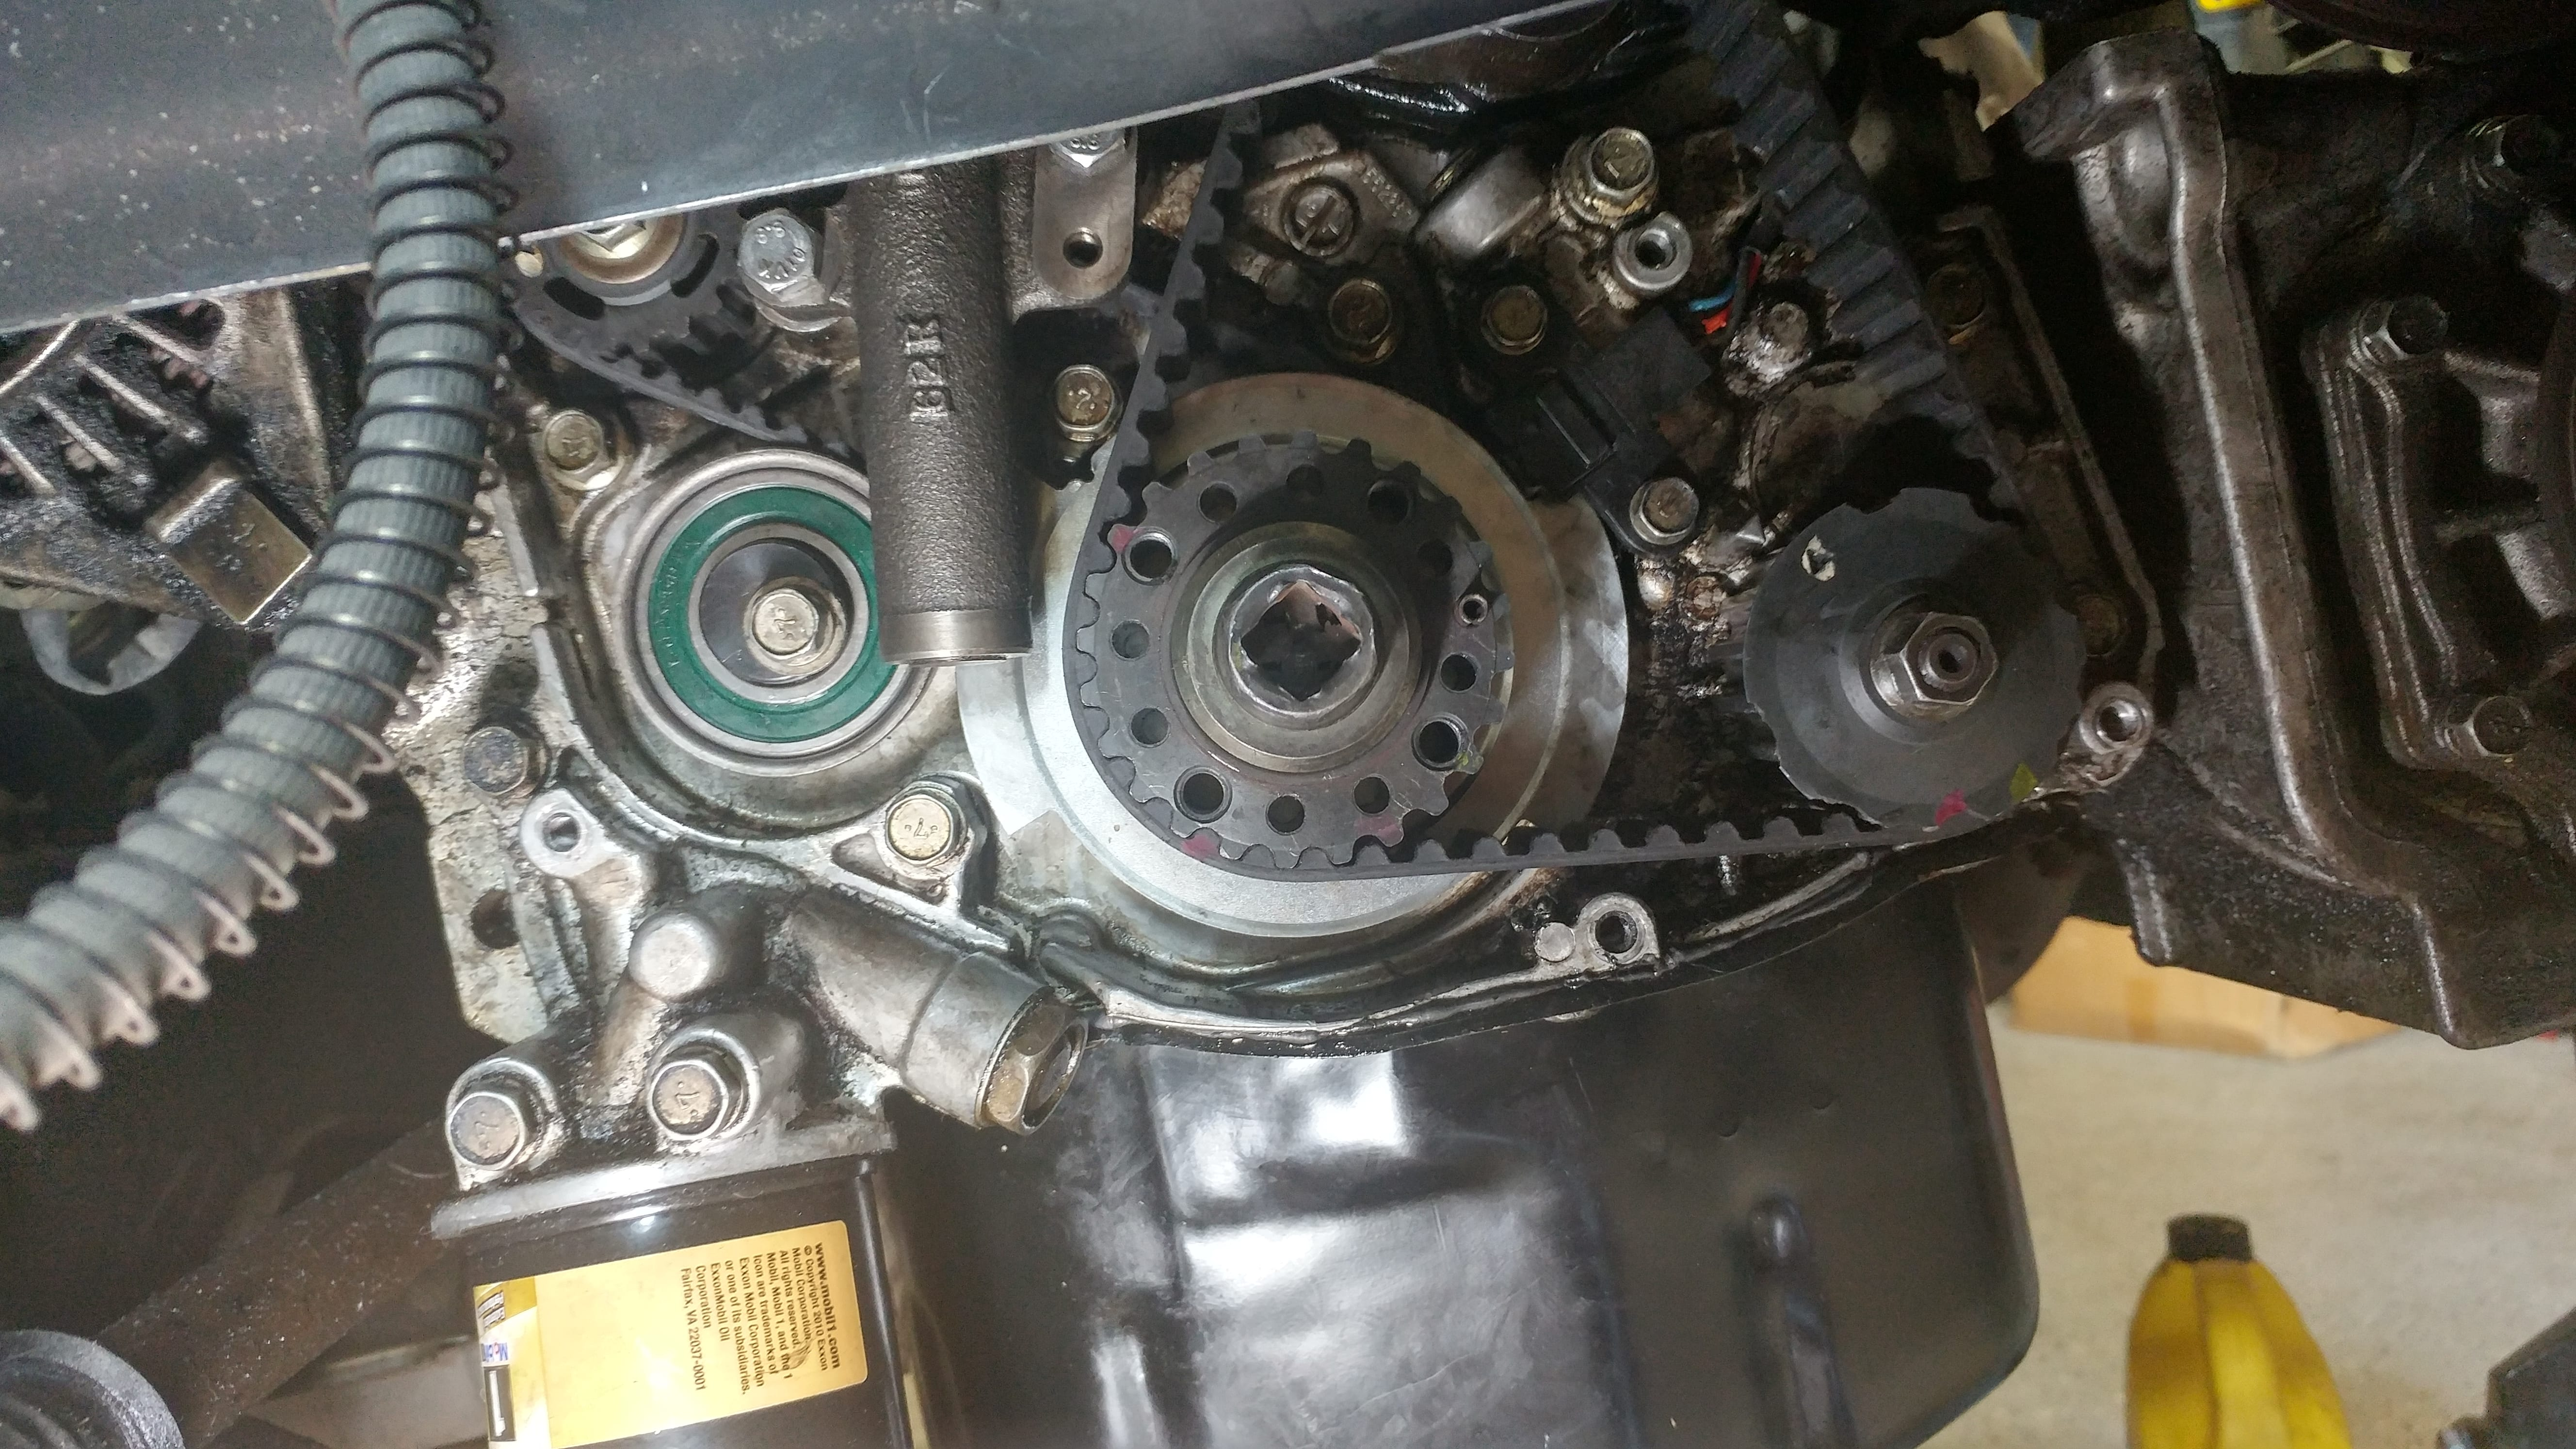 The Head Gasket And Timing Belt On A 2002 Mitsubishi Galant 24l Interference Engine Chart 20160525 160512 Hdr Min